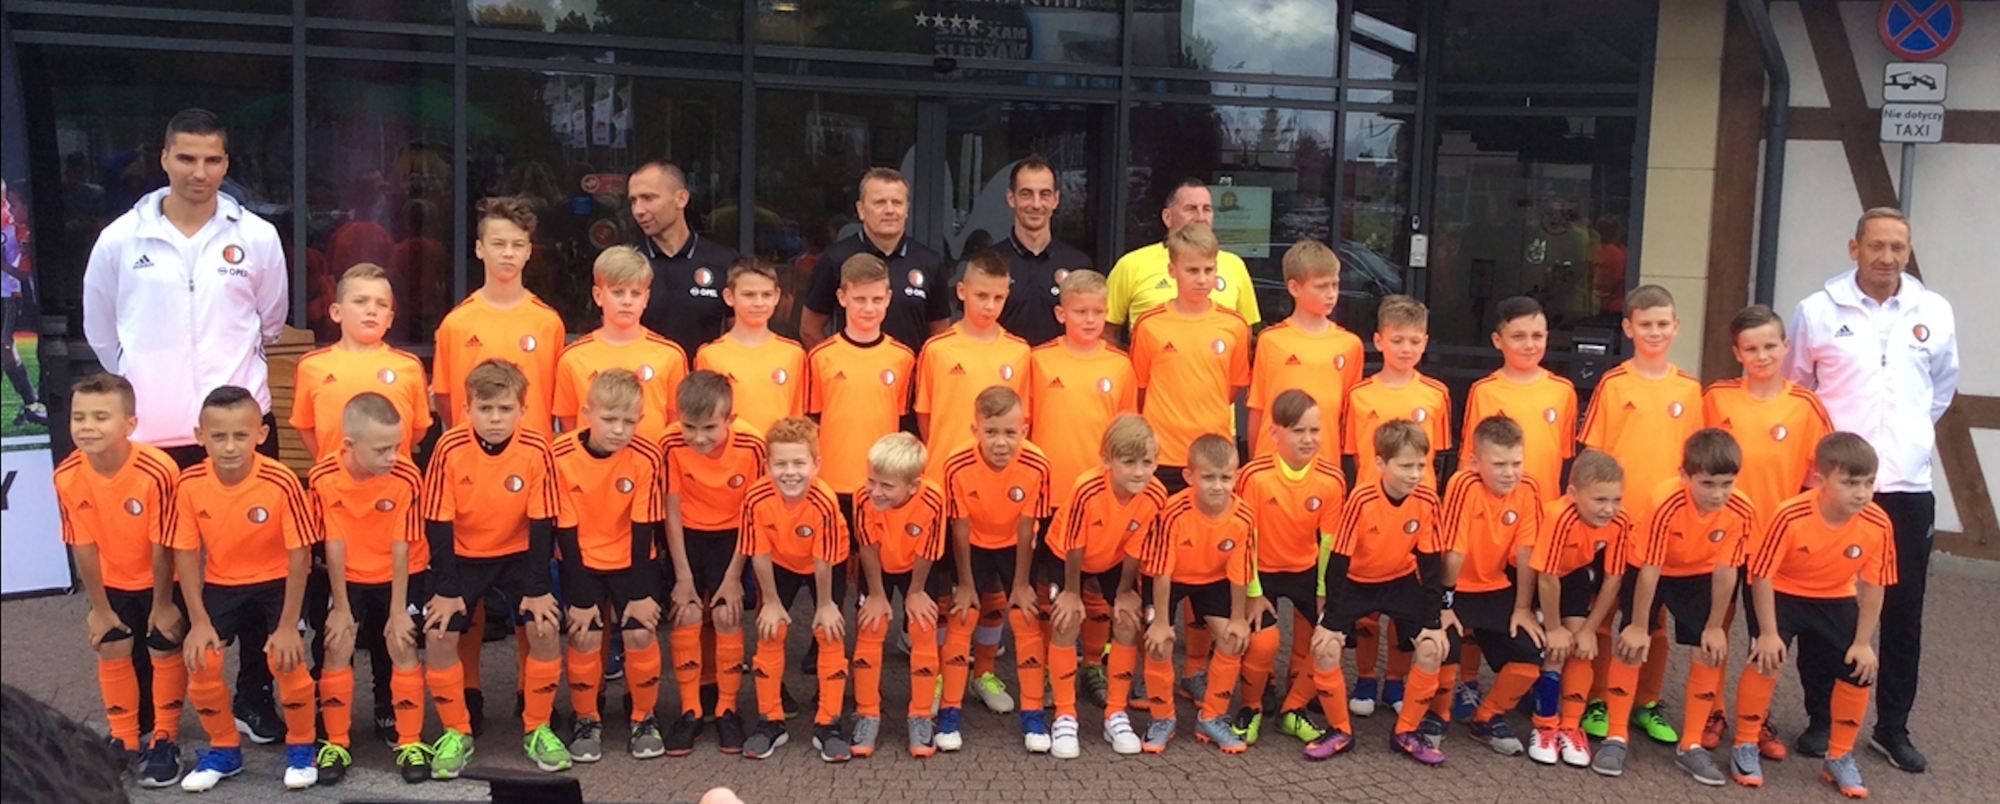 Partnership agreement for Feyenoord Football School in Gdansk